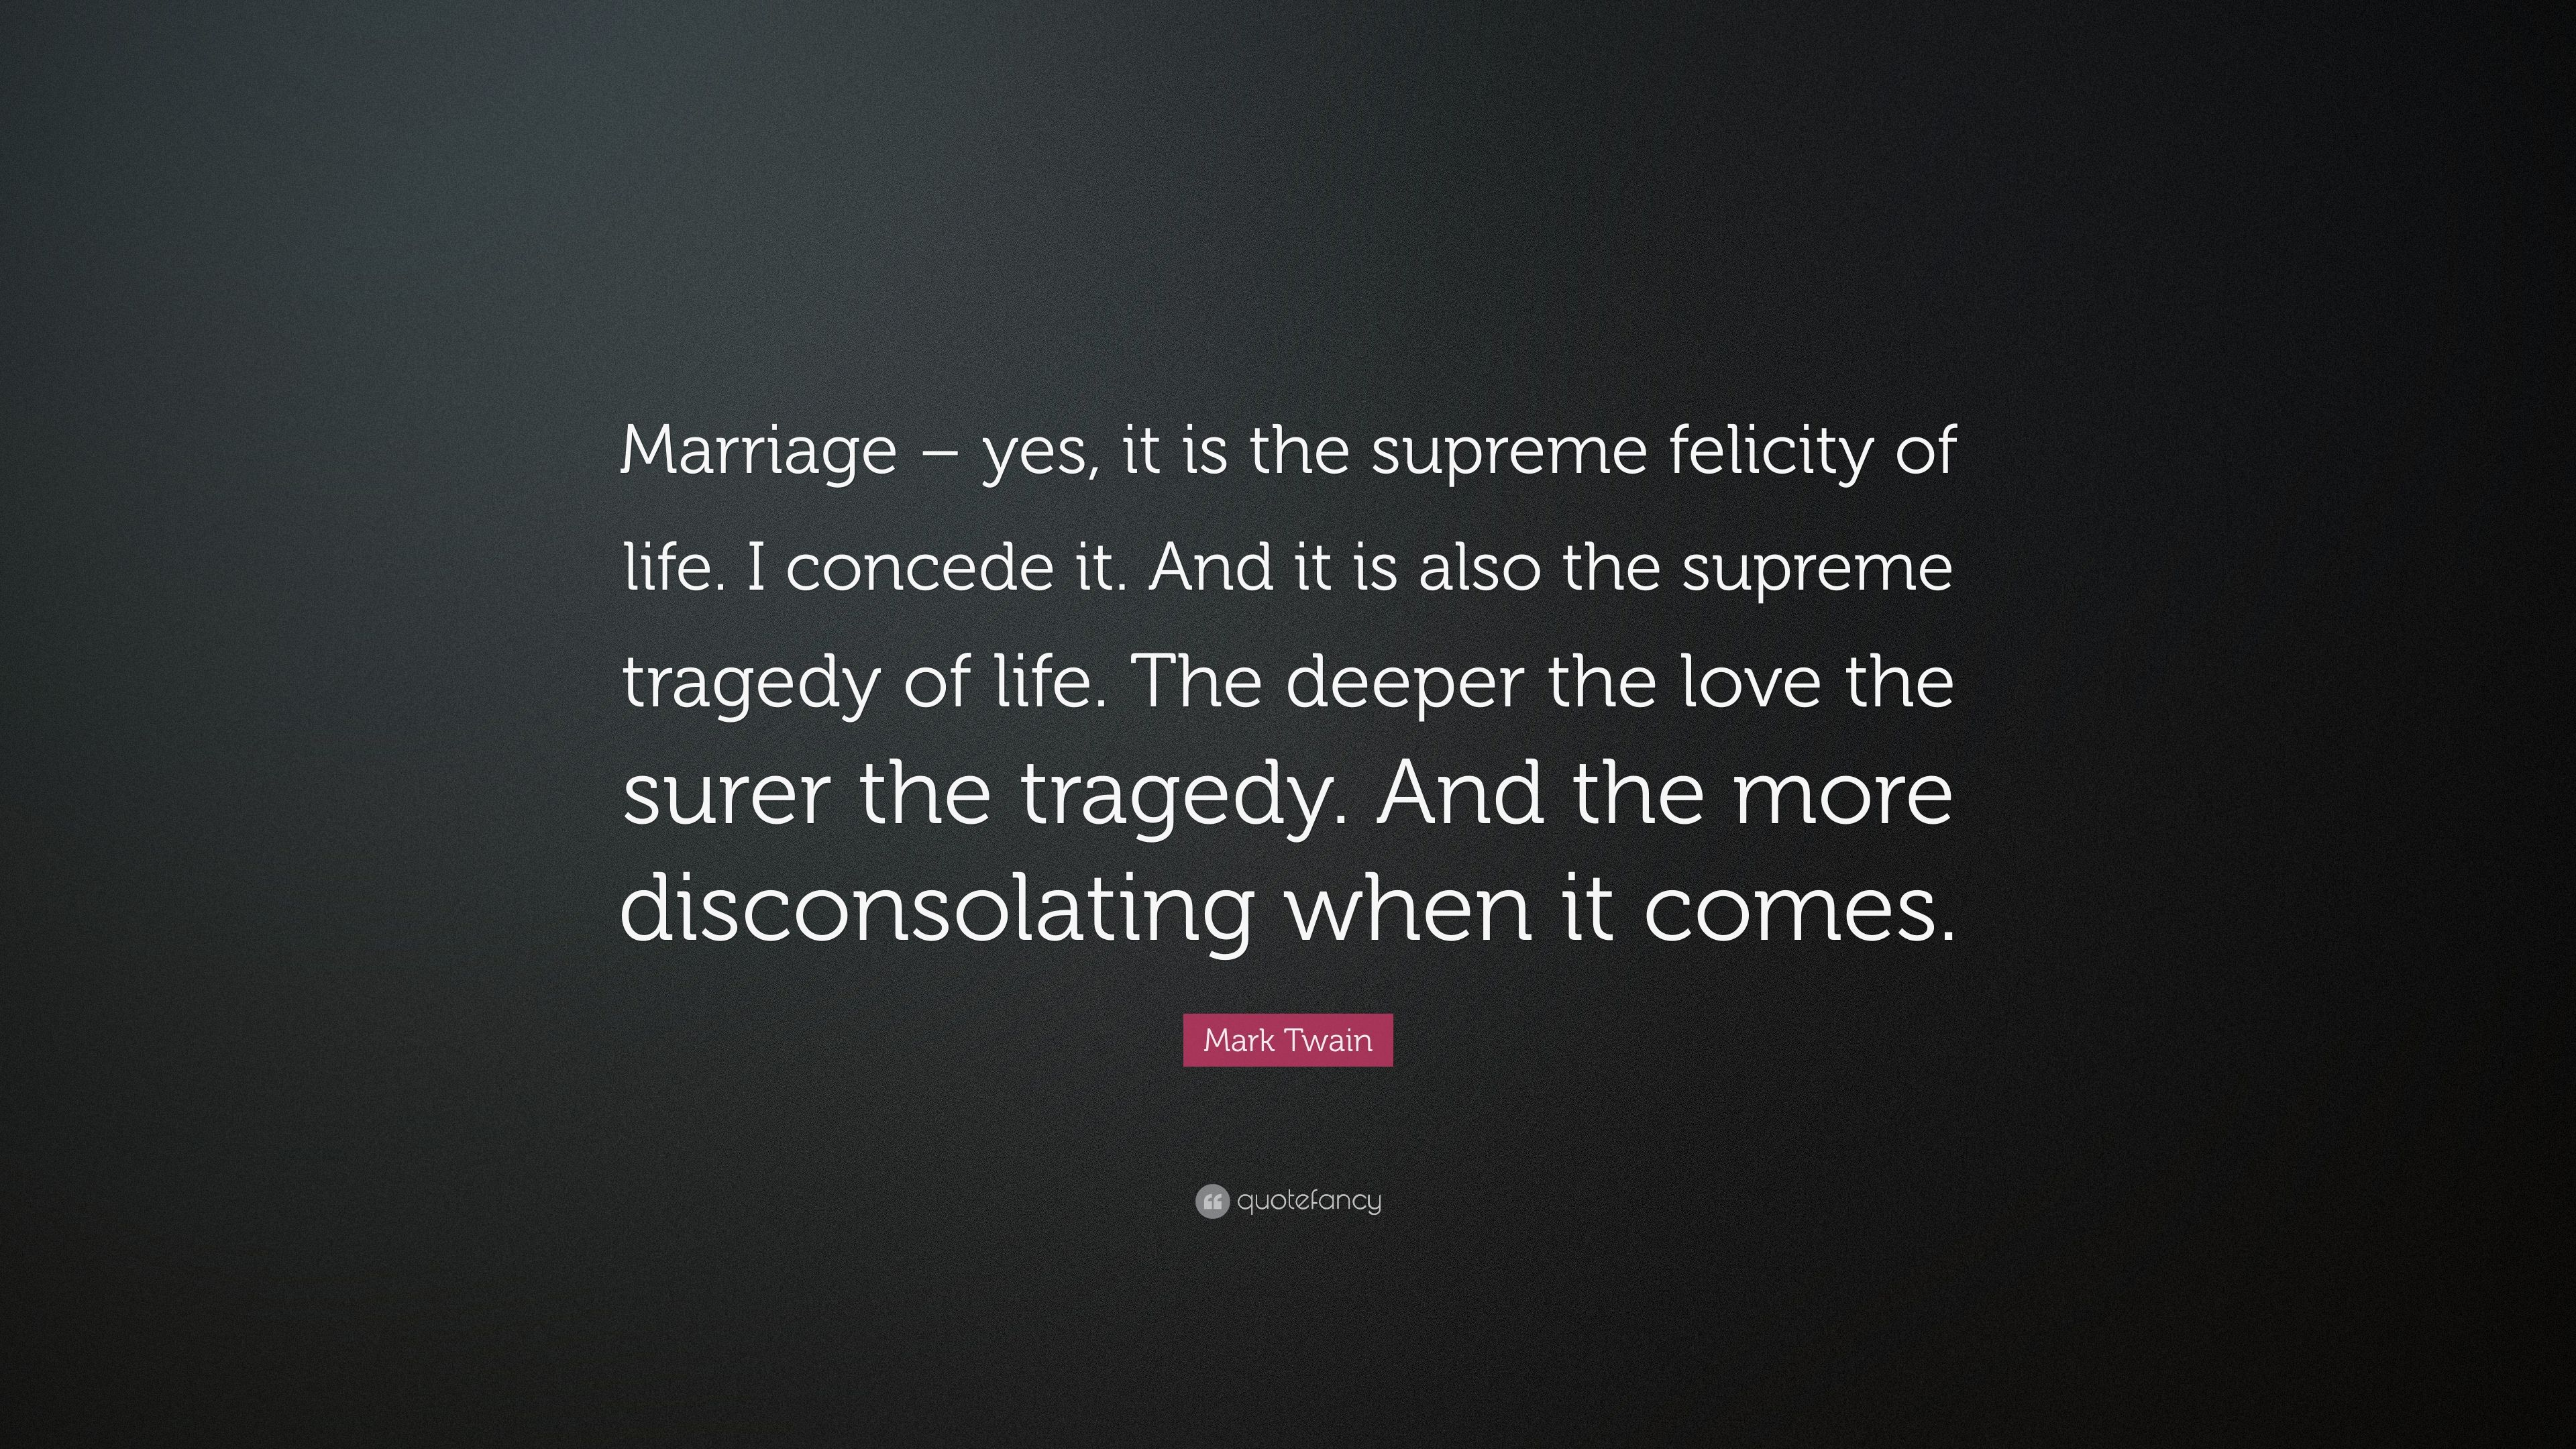 Mark Twain Quote Marriage Yes It Is The Supreme Felicity Of